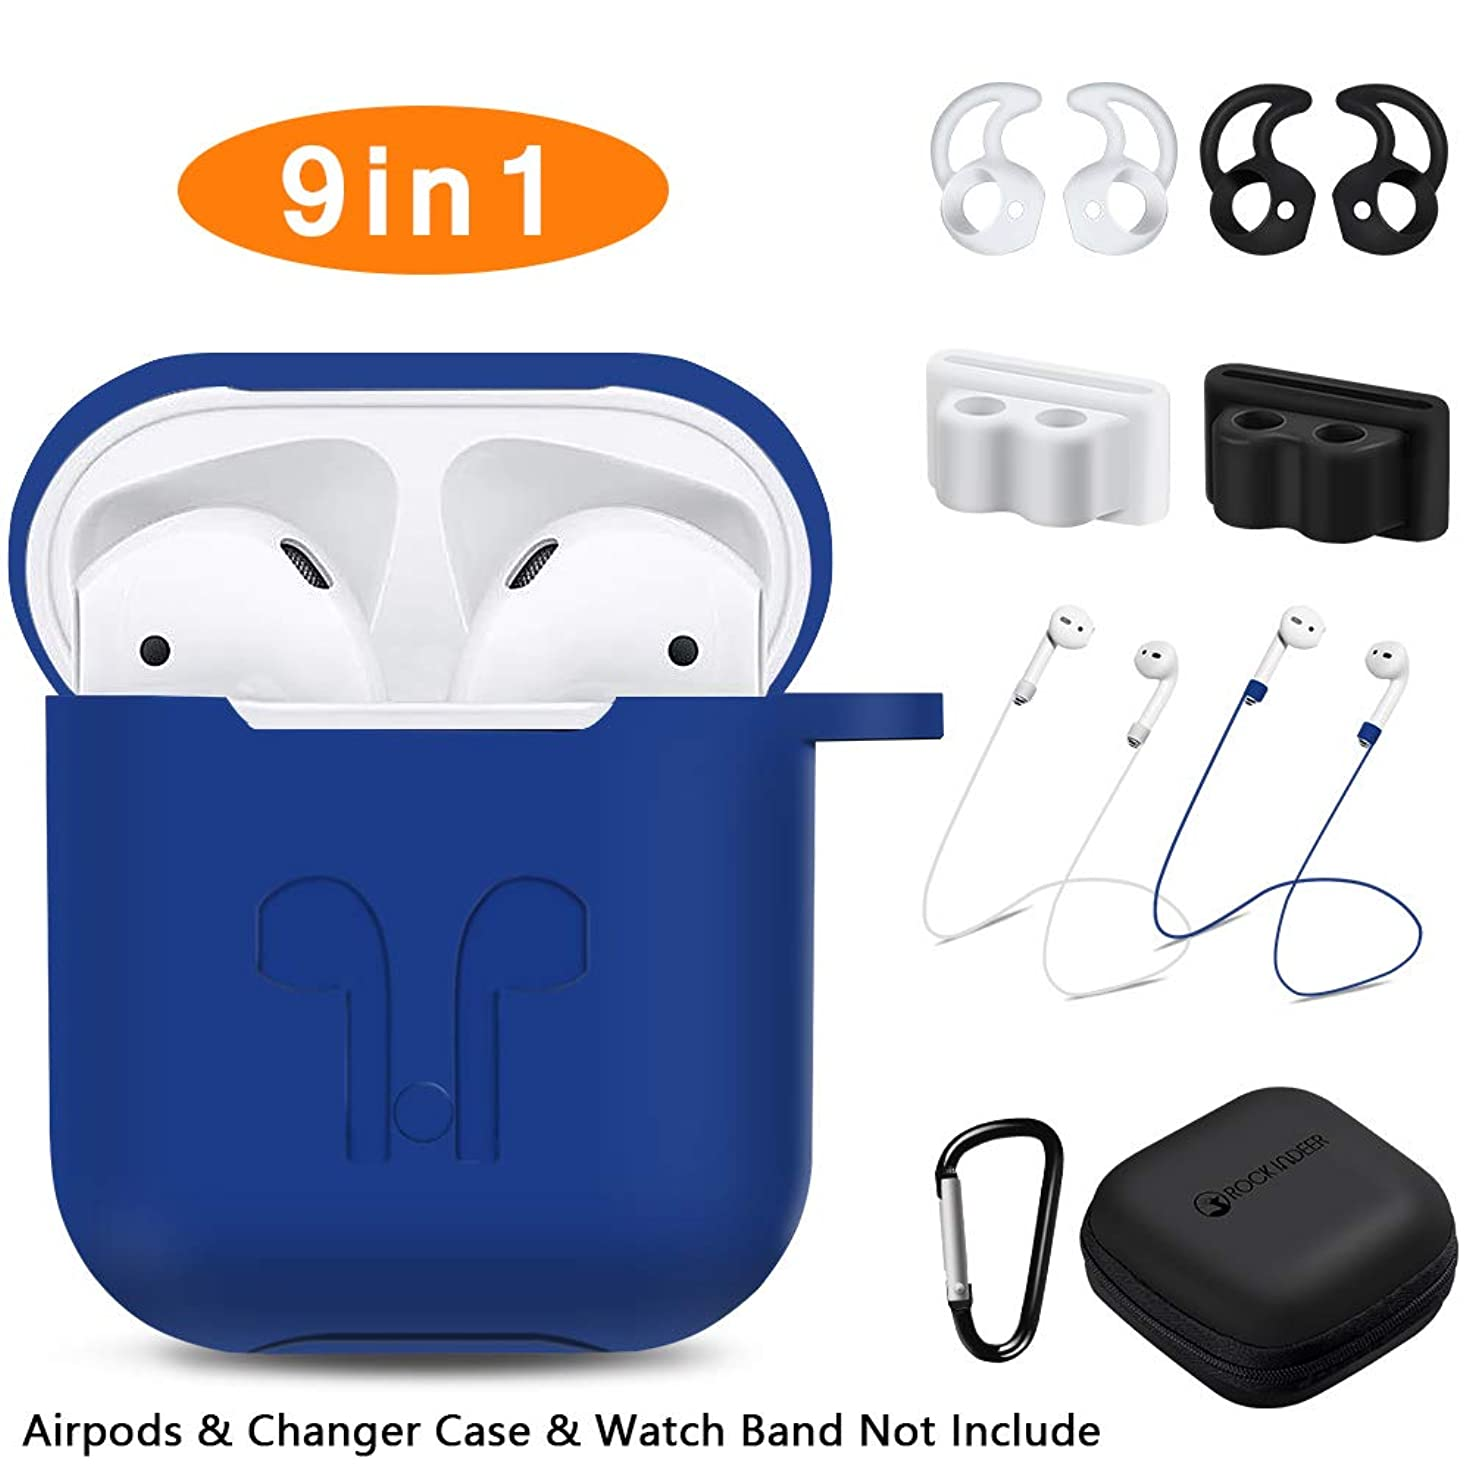 AirPods Case, Rockindeer 9 in 1 AirPods Accessories Set Protective Silicone Cover Skin Compatible Apple AirPods Charging Case with Watch Band Holder/Ear Hook/Keychain/Strap/Carrying Box (Navy Blue)